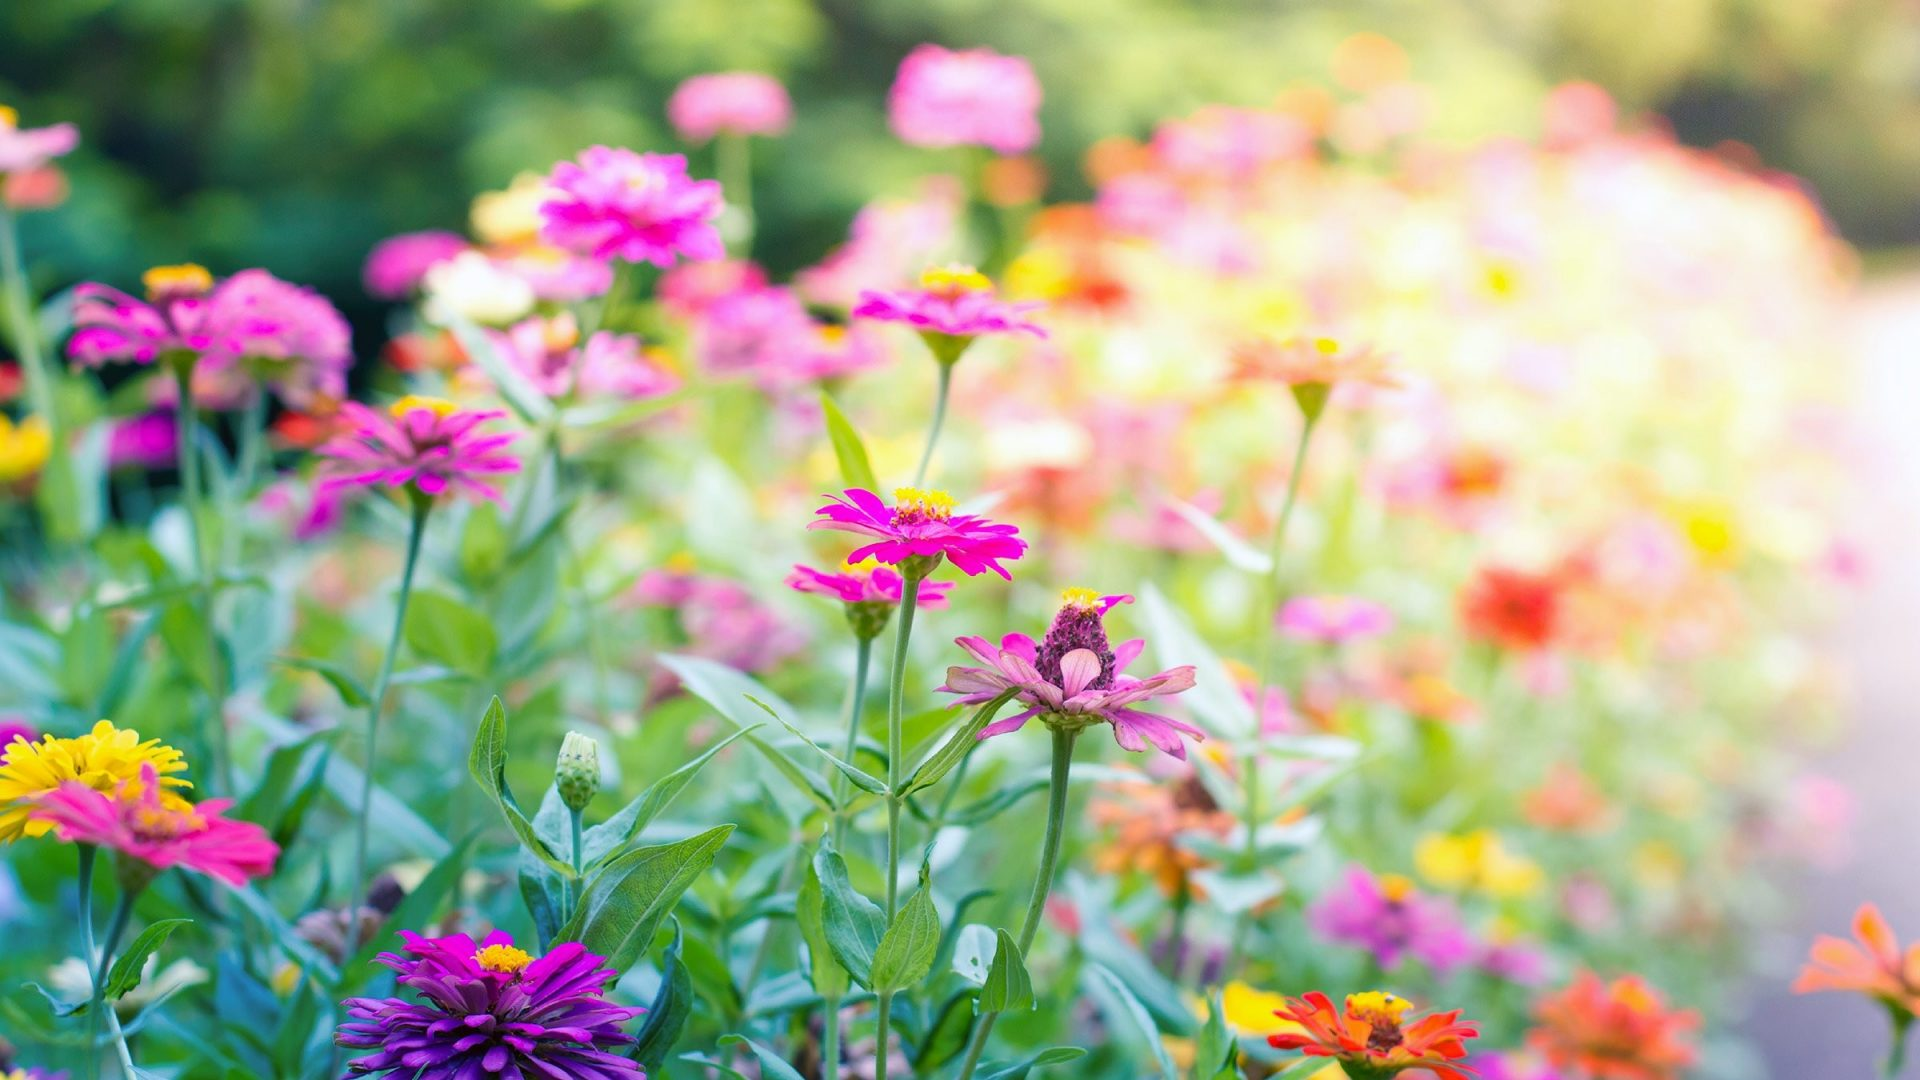 Free desktop wallpaper hd flowers landscape download for Flower landscape